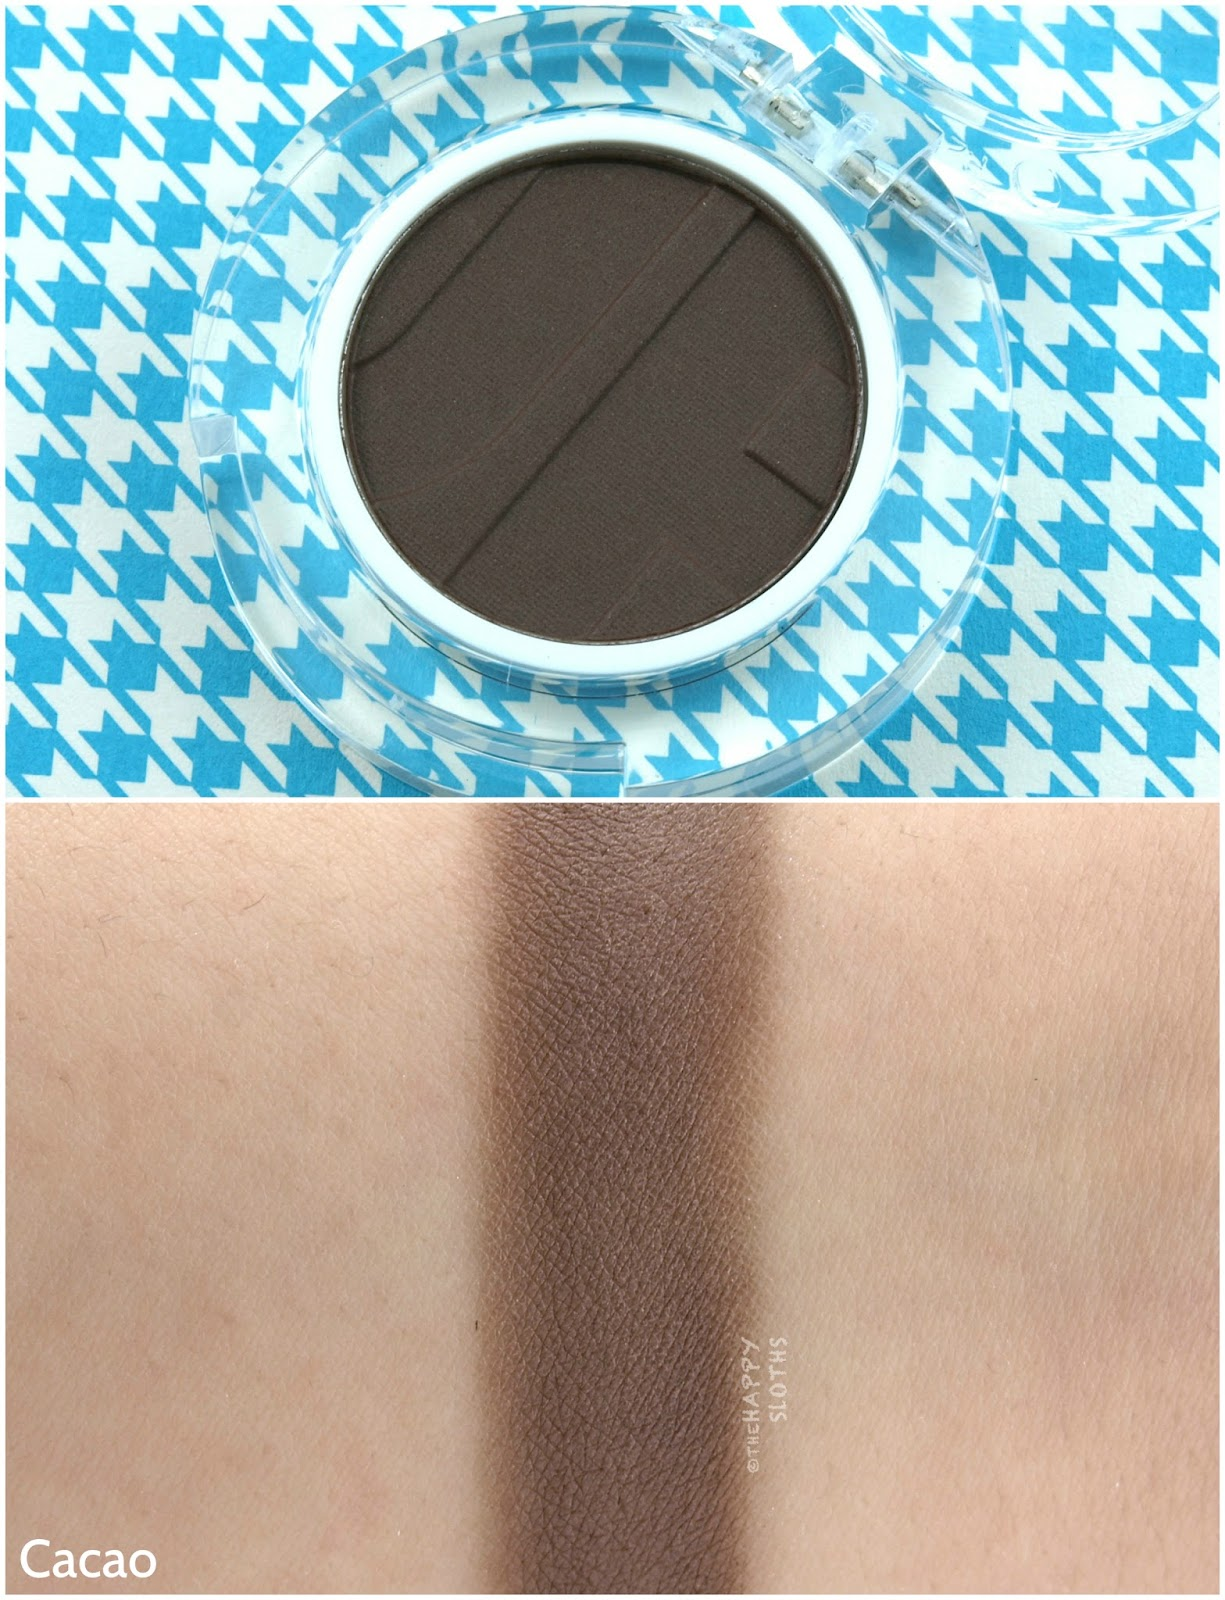 Joe Fresh Beauty Single Eyeshadow in Cacao: Review and Swatches